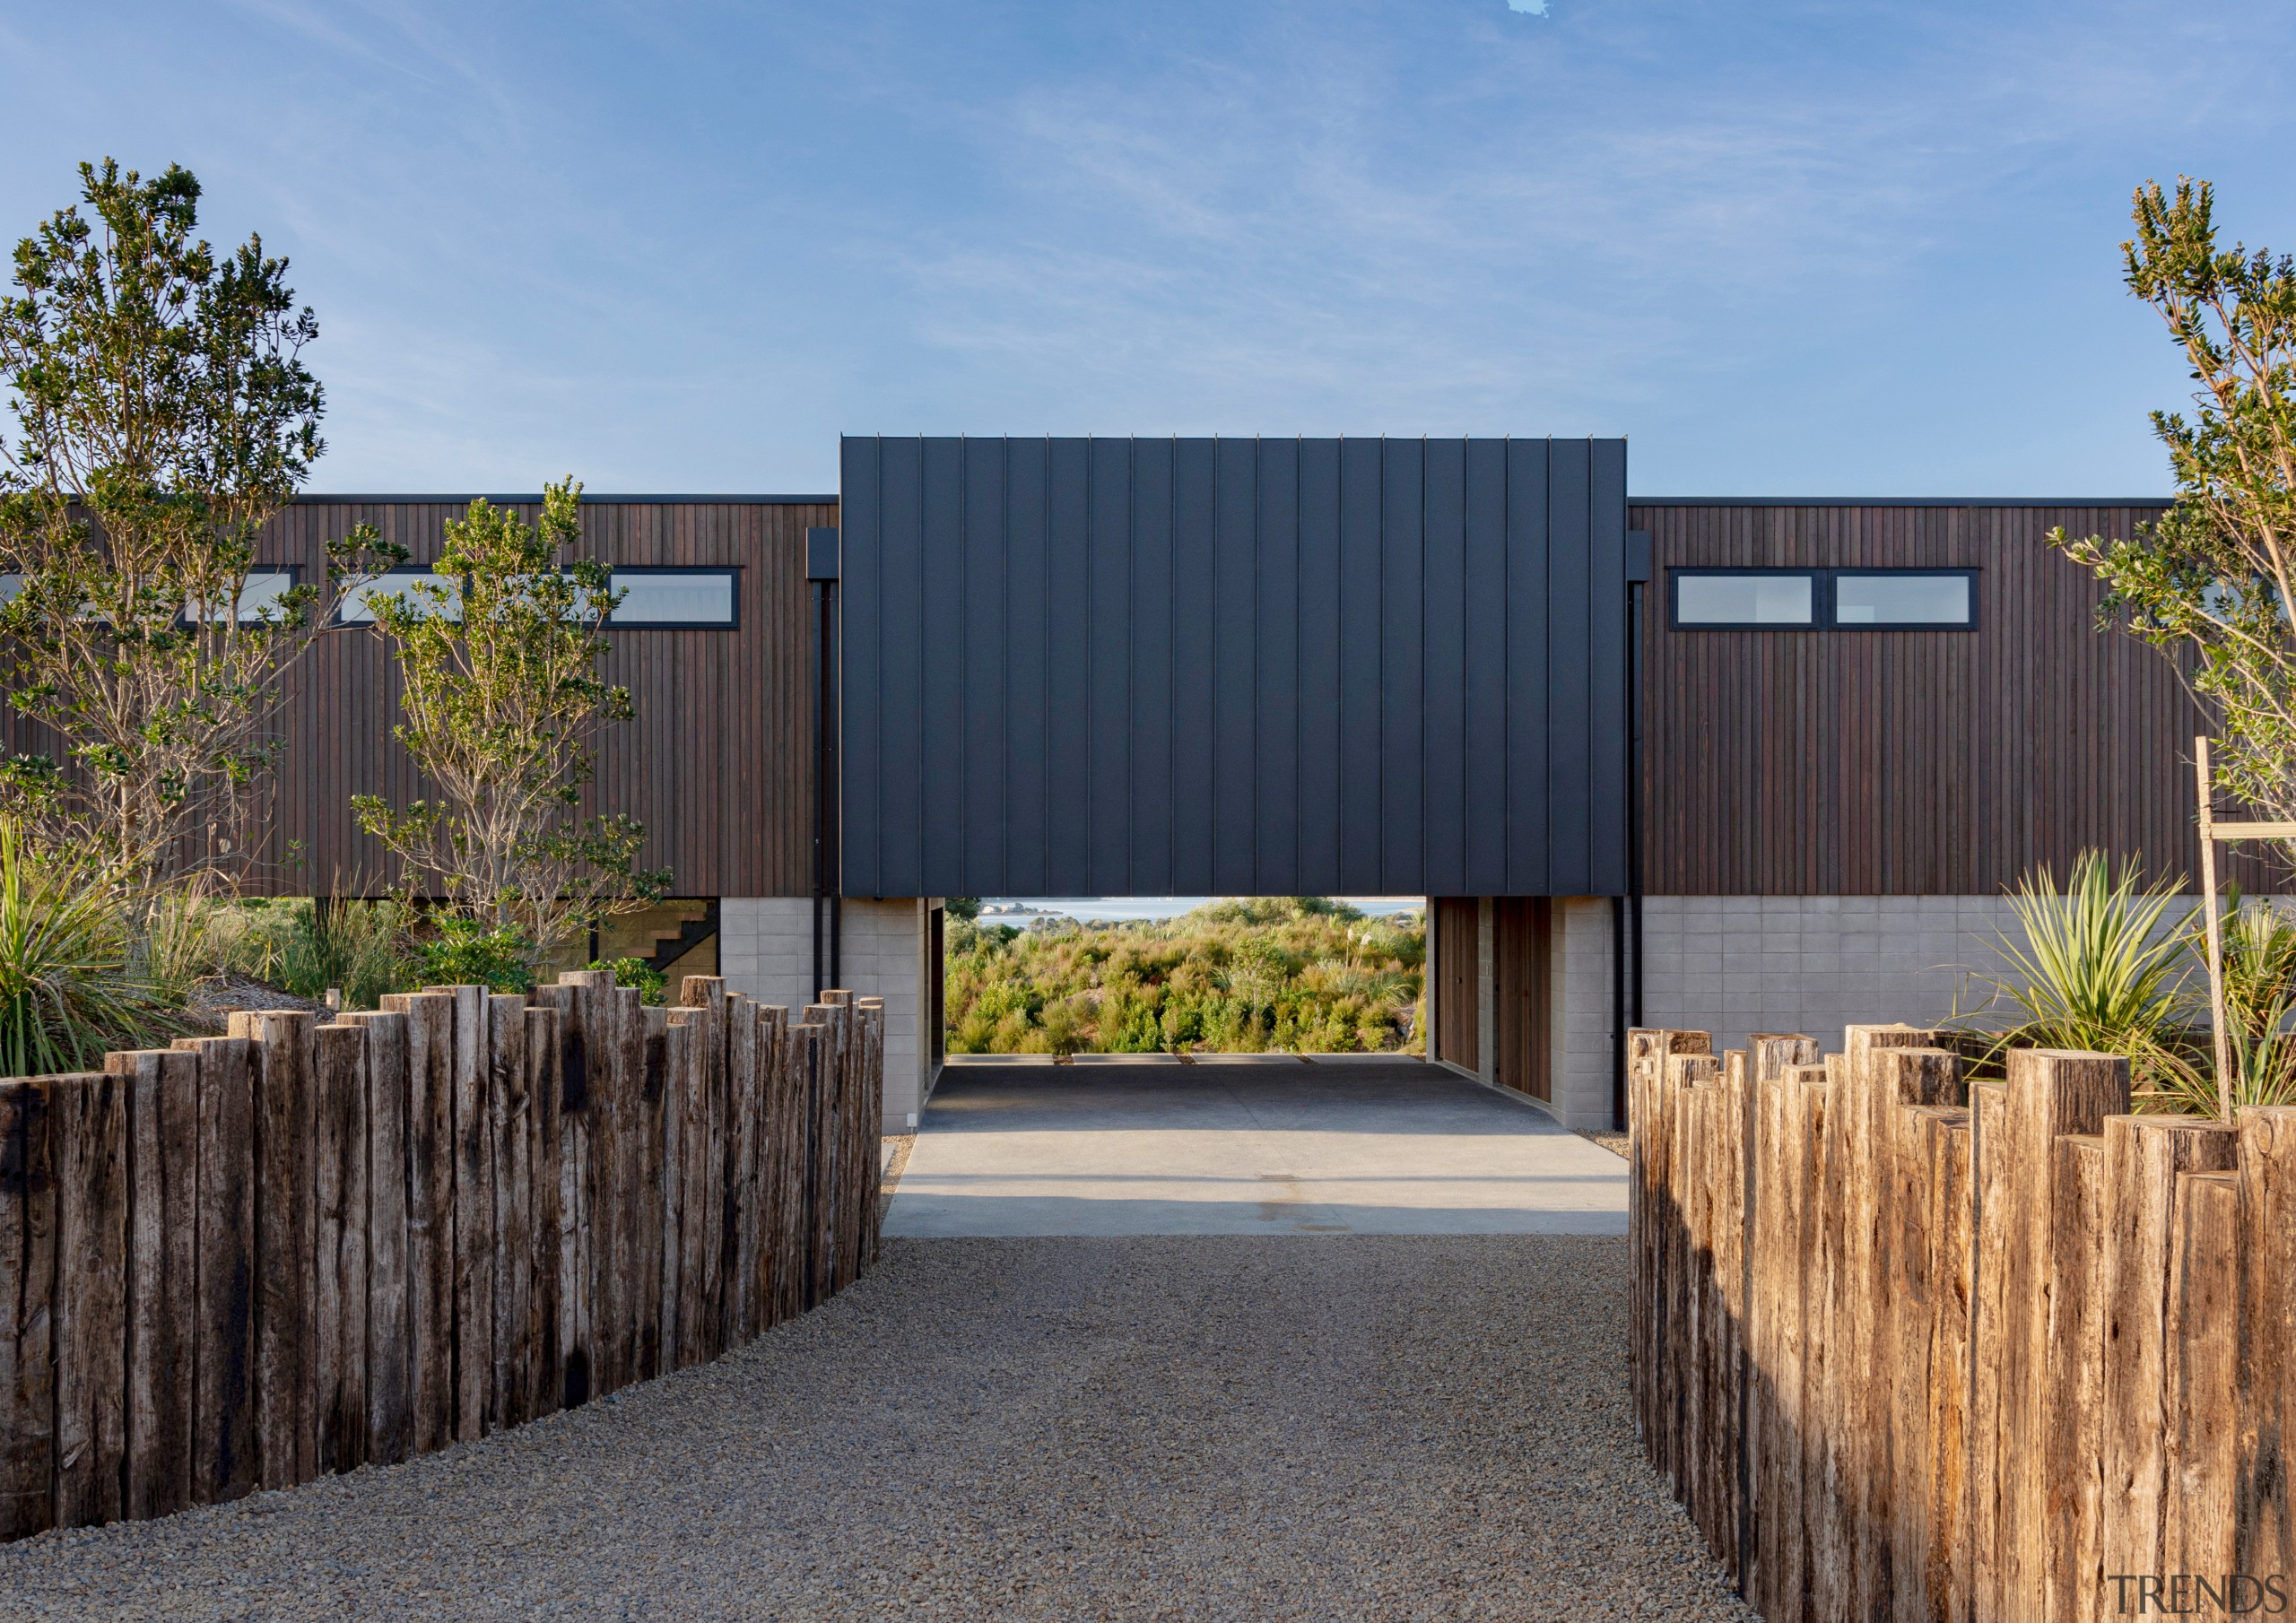 The home's central connector is clad in zinc